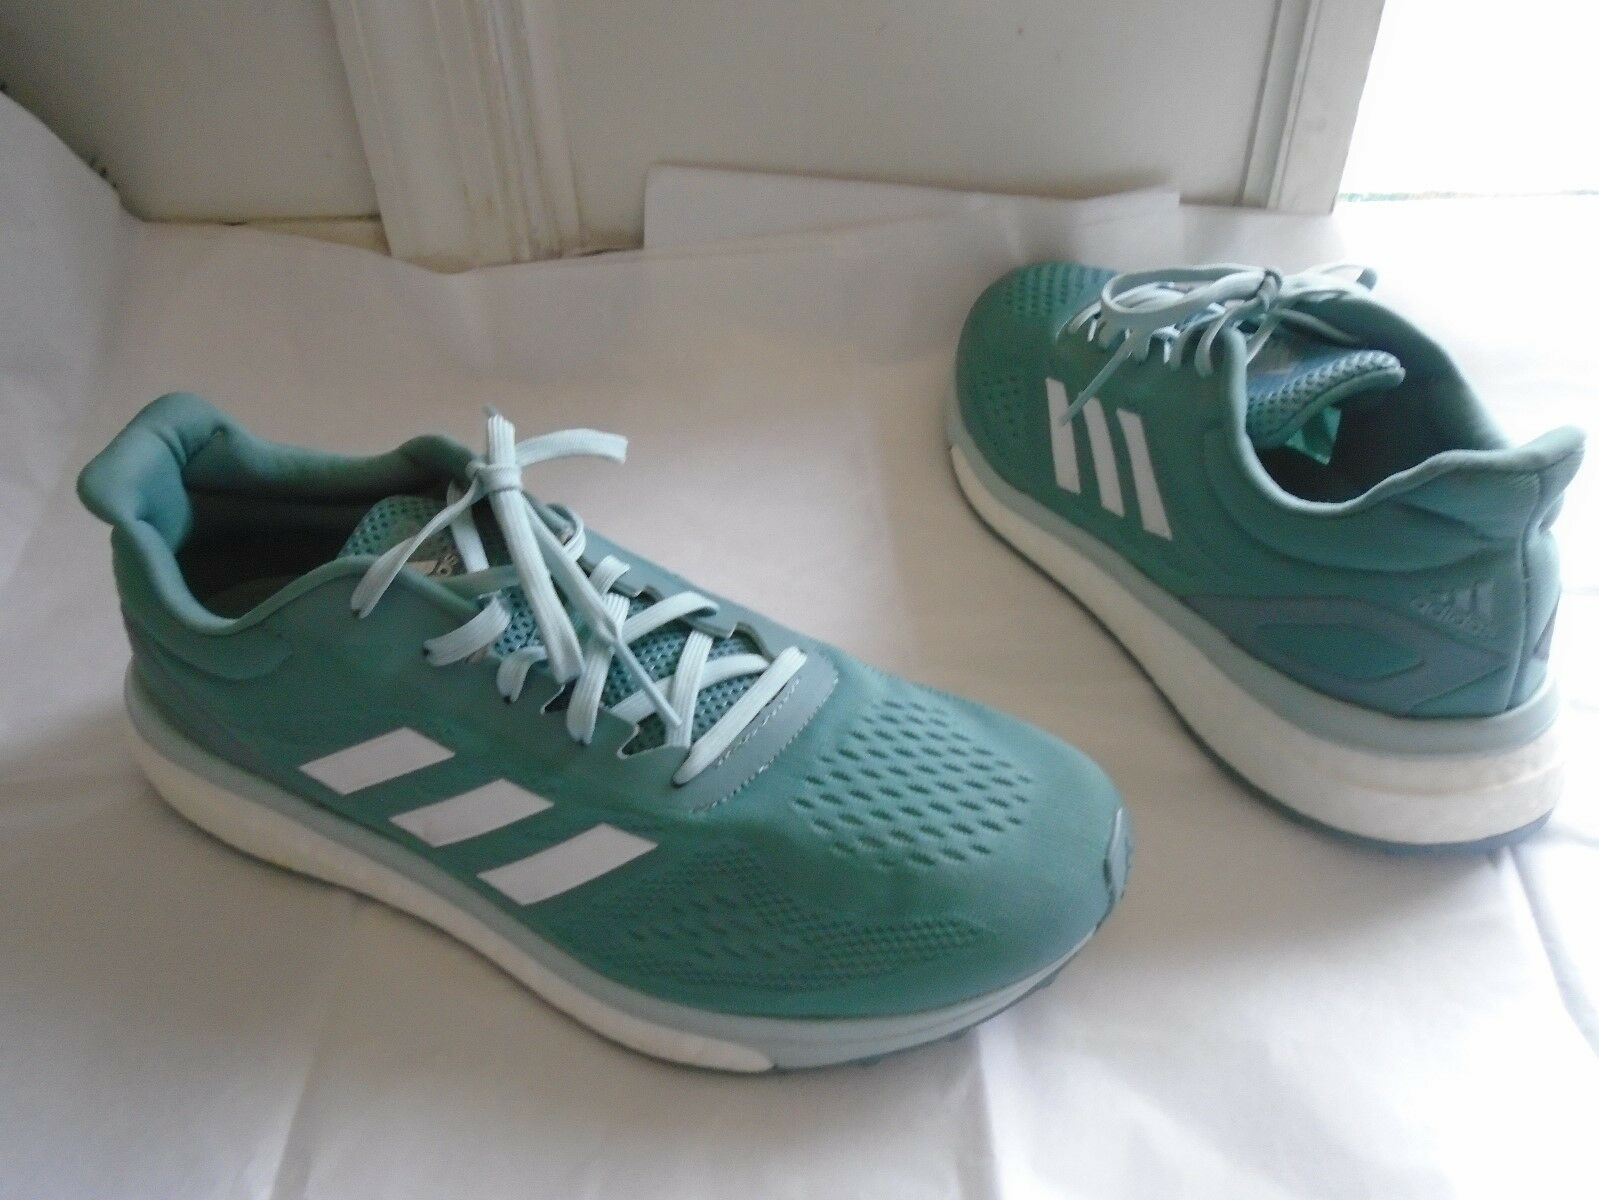 Adidas Boost Endless Energy Running shoes Sneakers Women's SZ 10 EUC